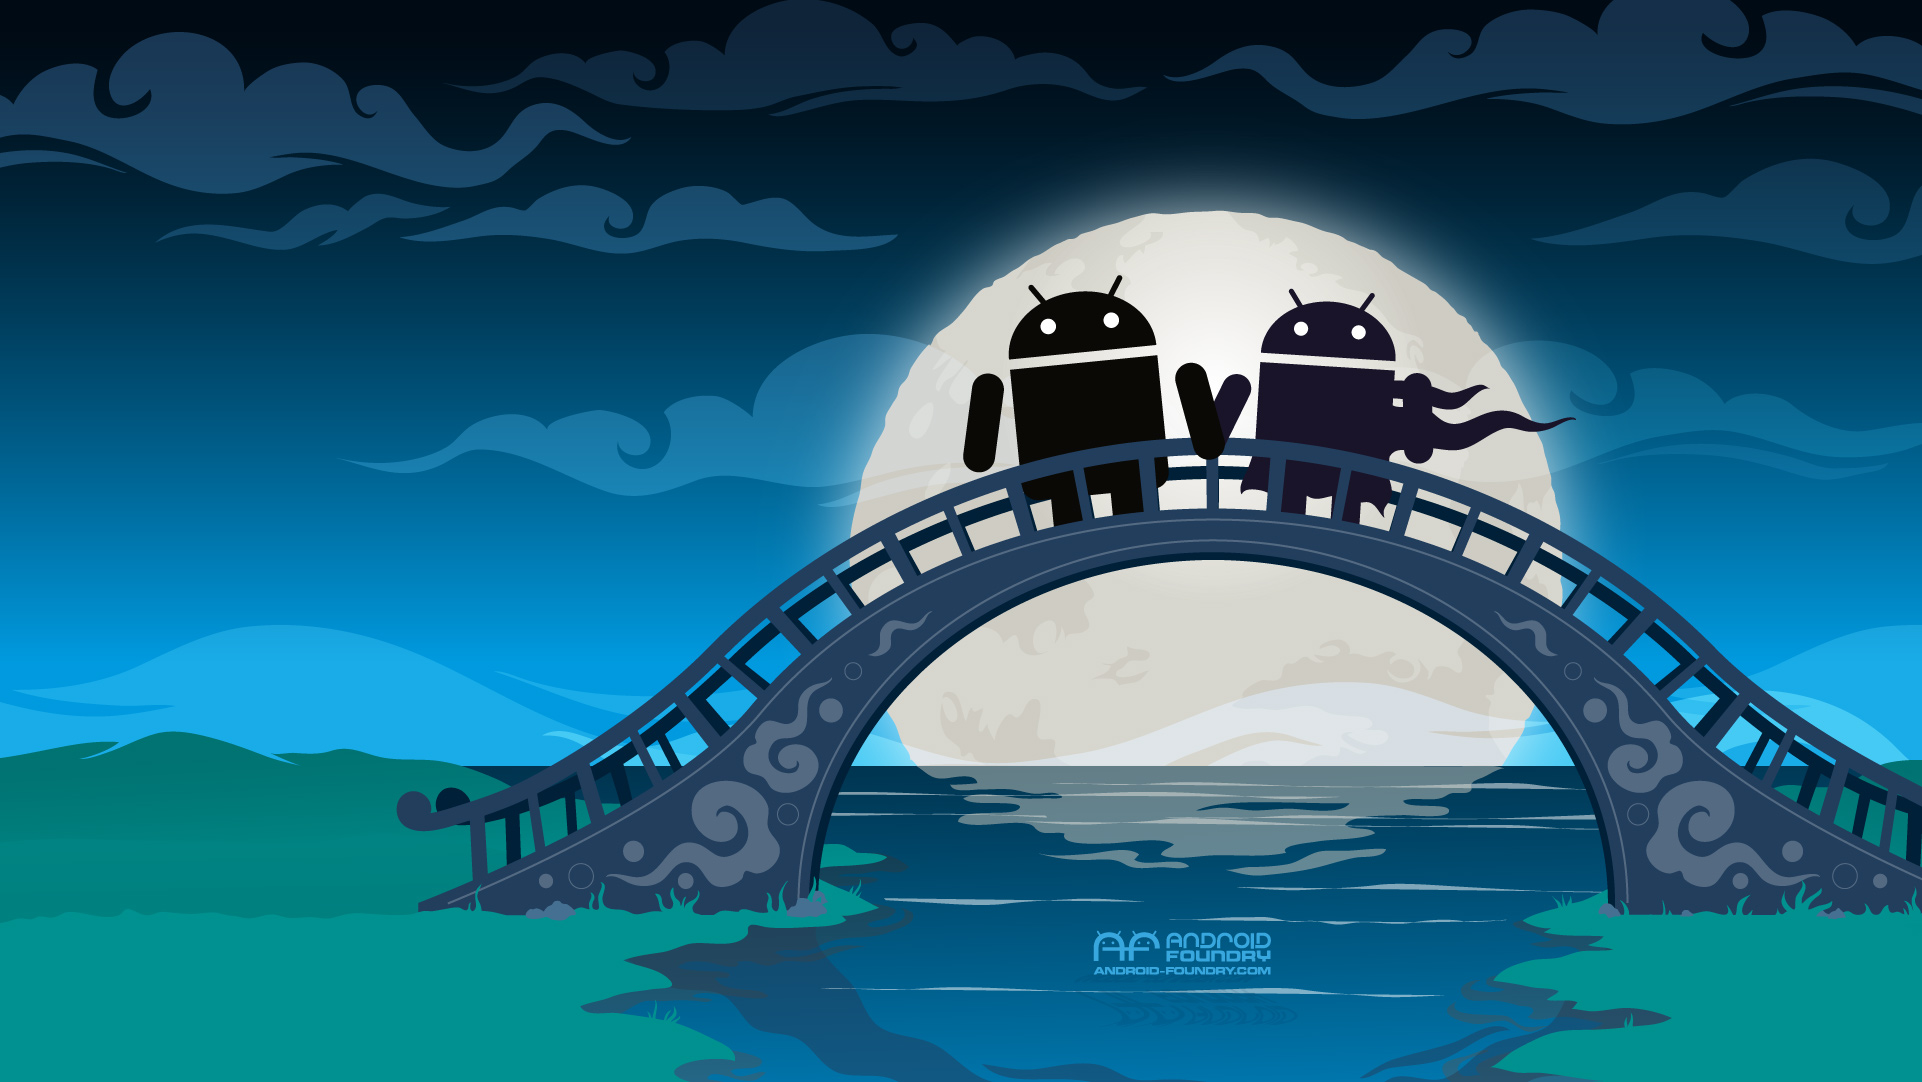 Download Wallpaper Love Android - 071812_Android_QixiFestival_wallpaper  Pictures_45661.jpg